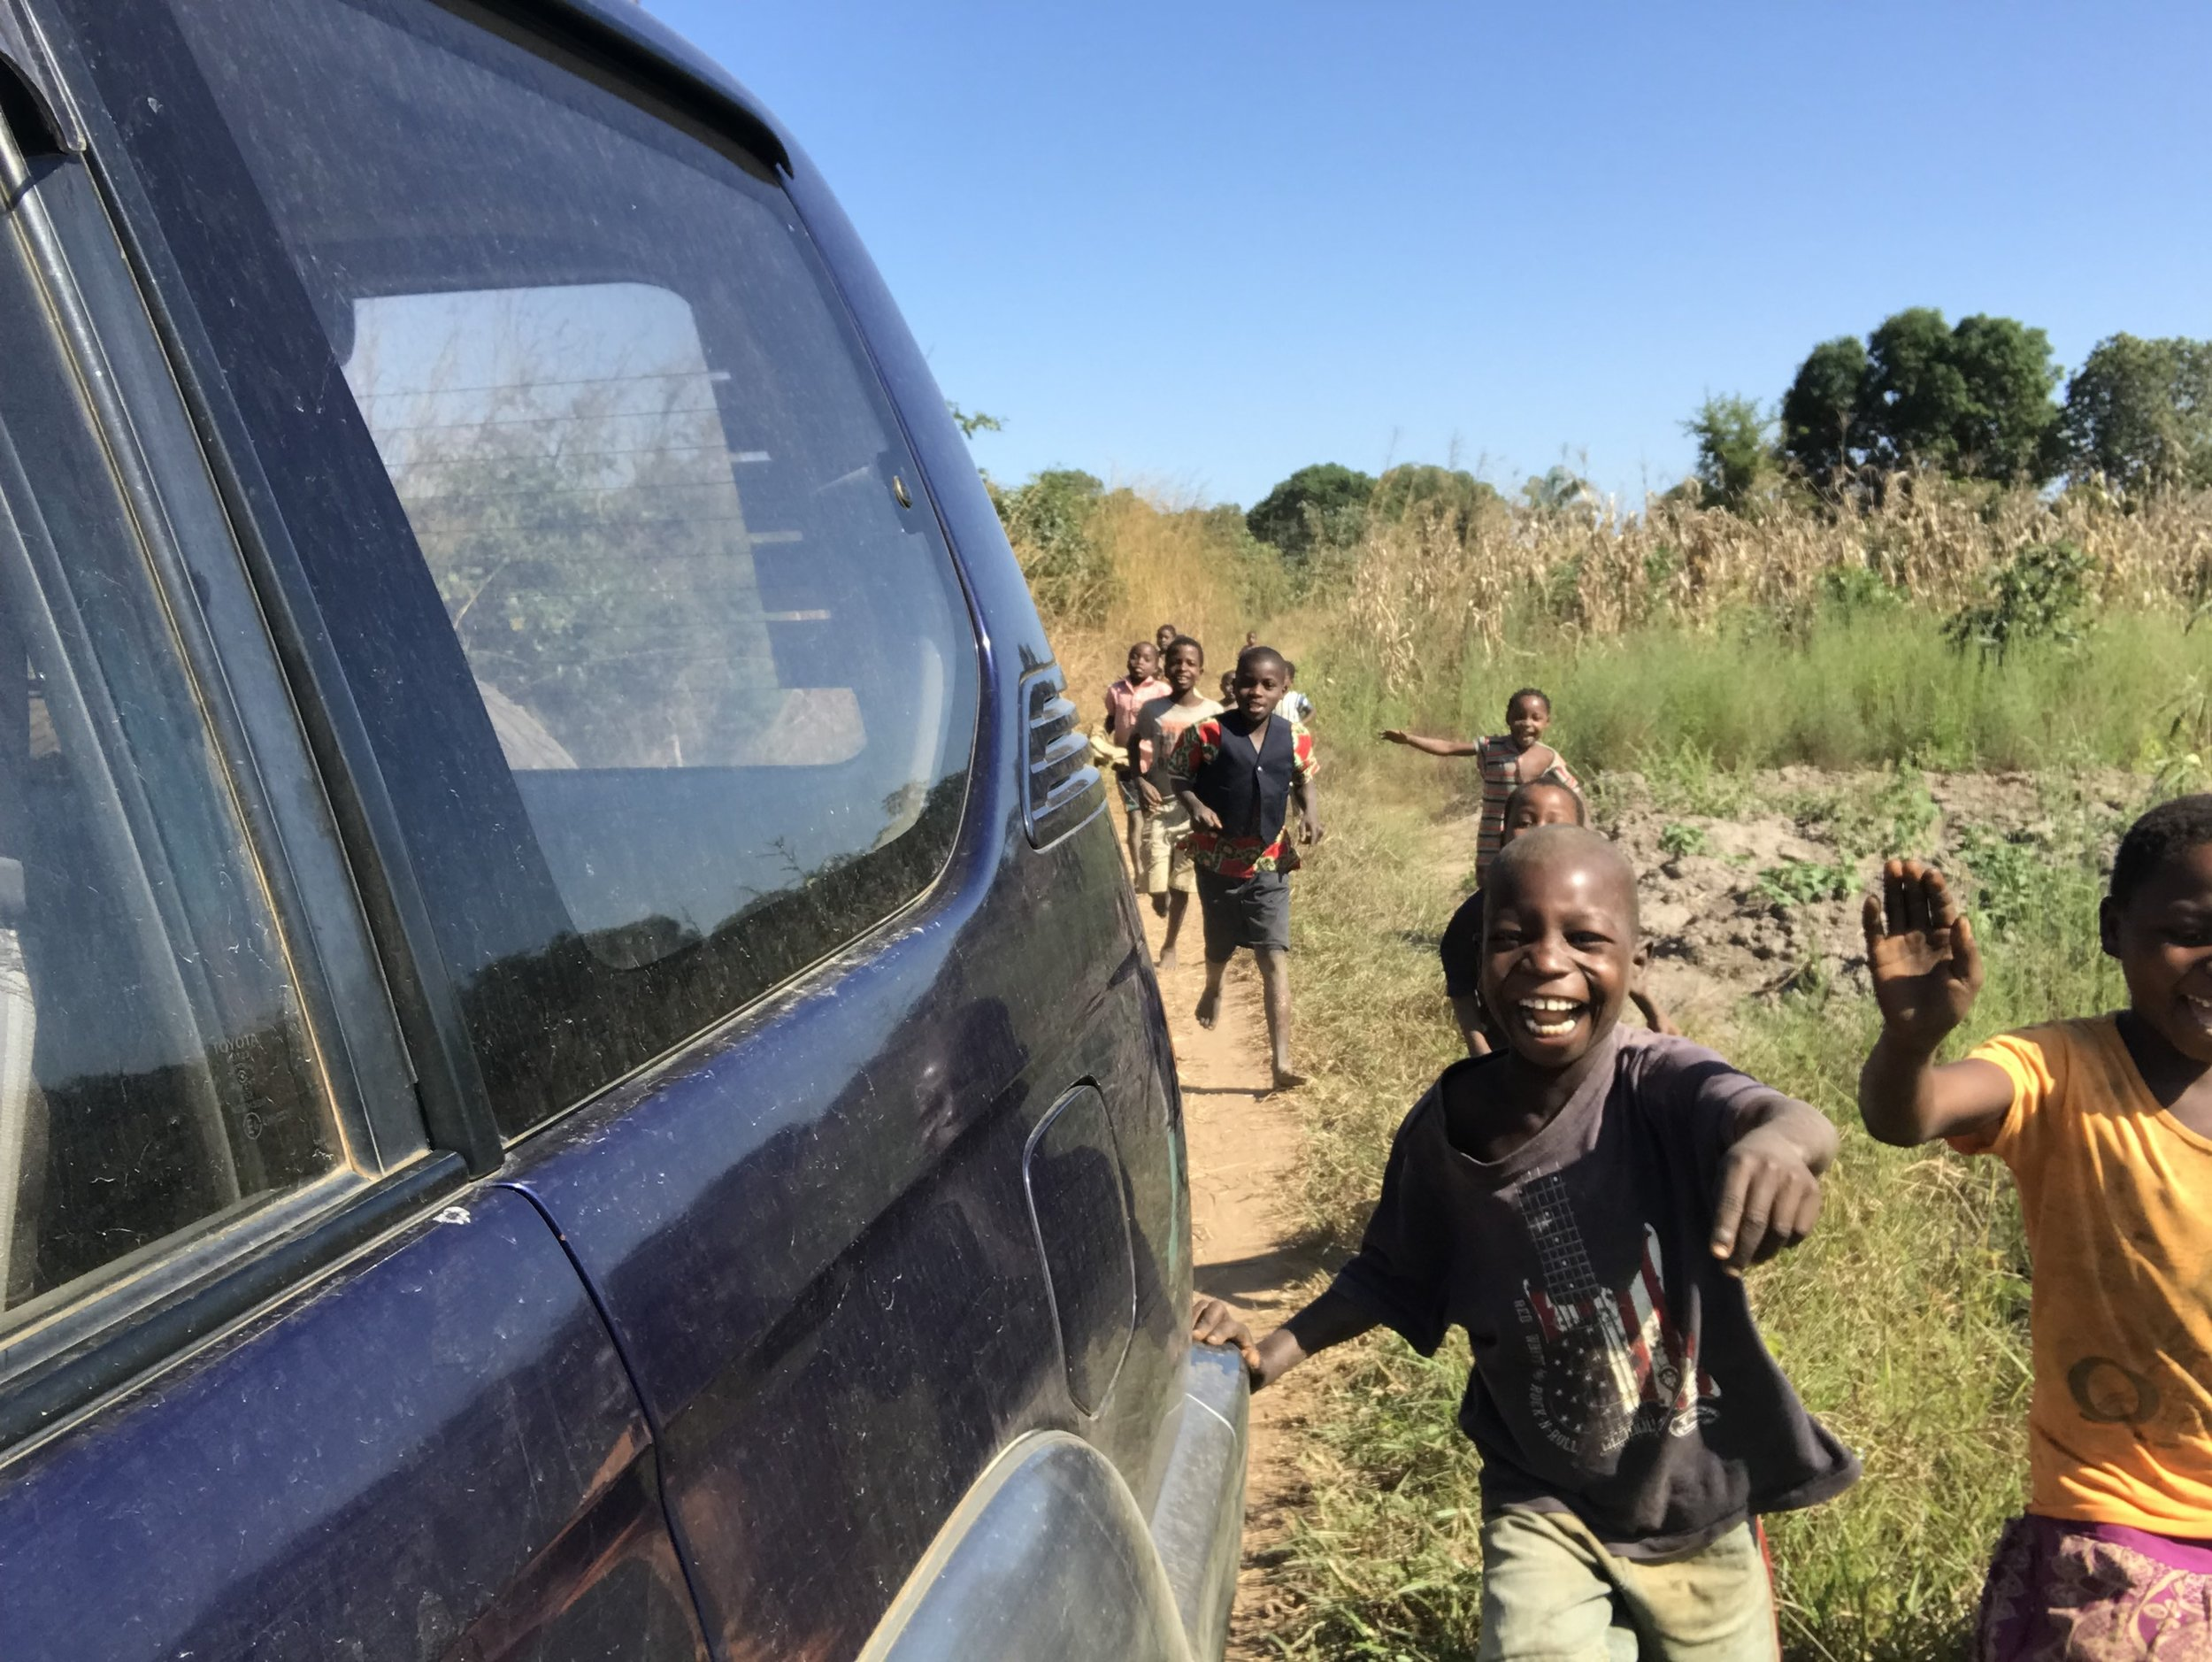 Kids running after our car when we enter the village. One of the sweetest sights for me.